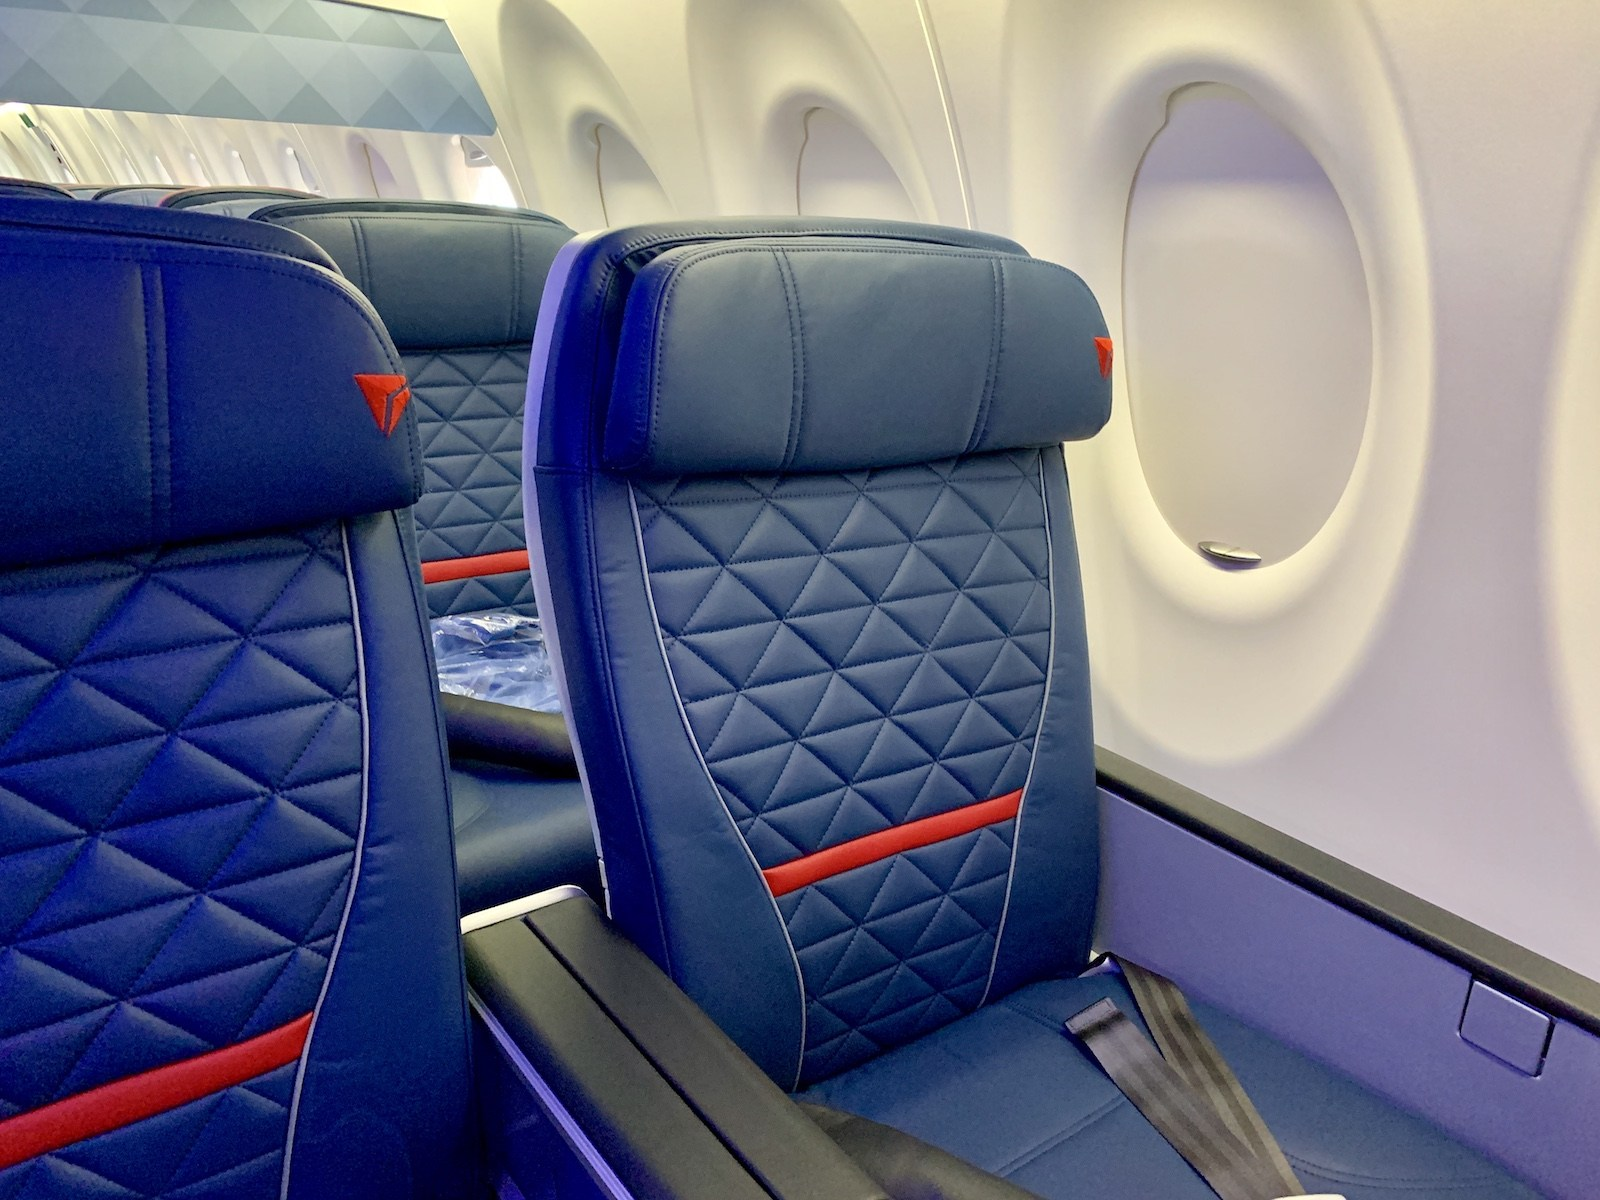 Delta A220 first class, photo courtesy of Darren Murph